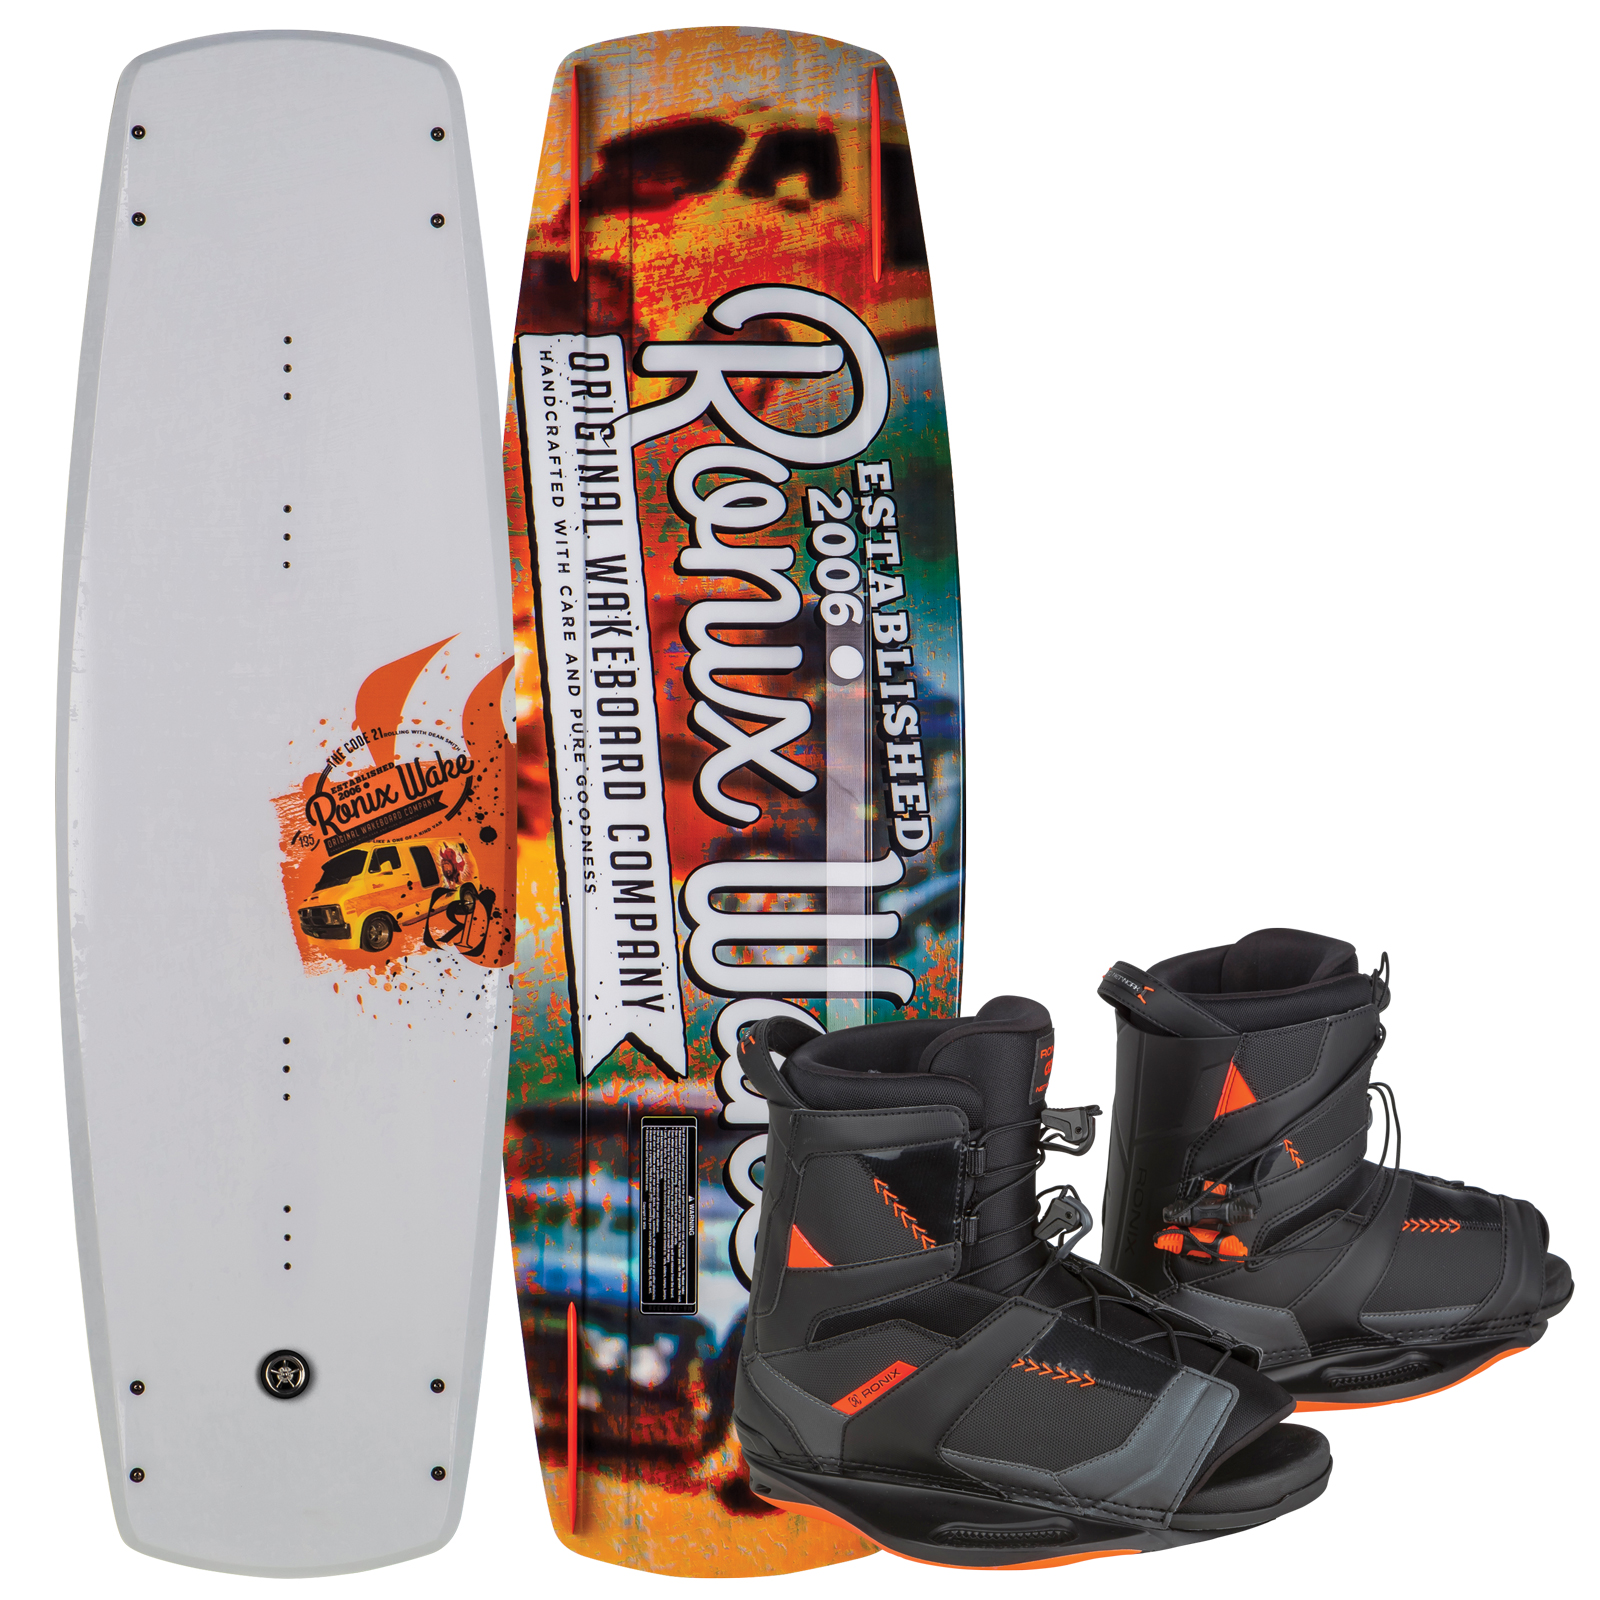 CODE 21 135 W/ NETWORK PACKAGE RONIX 2017